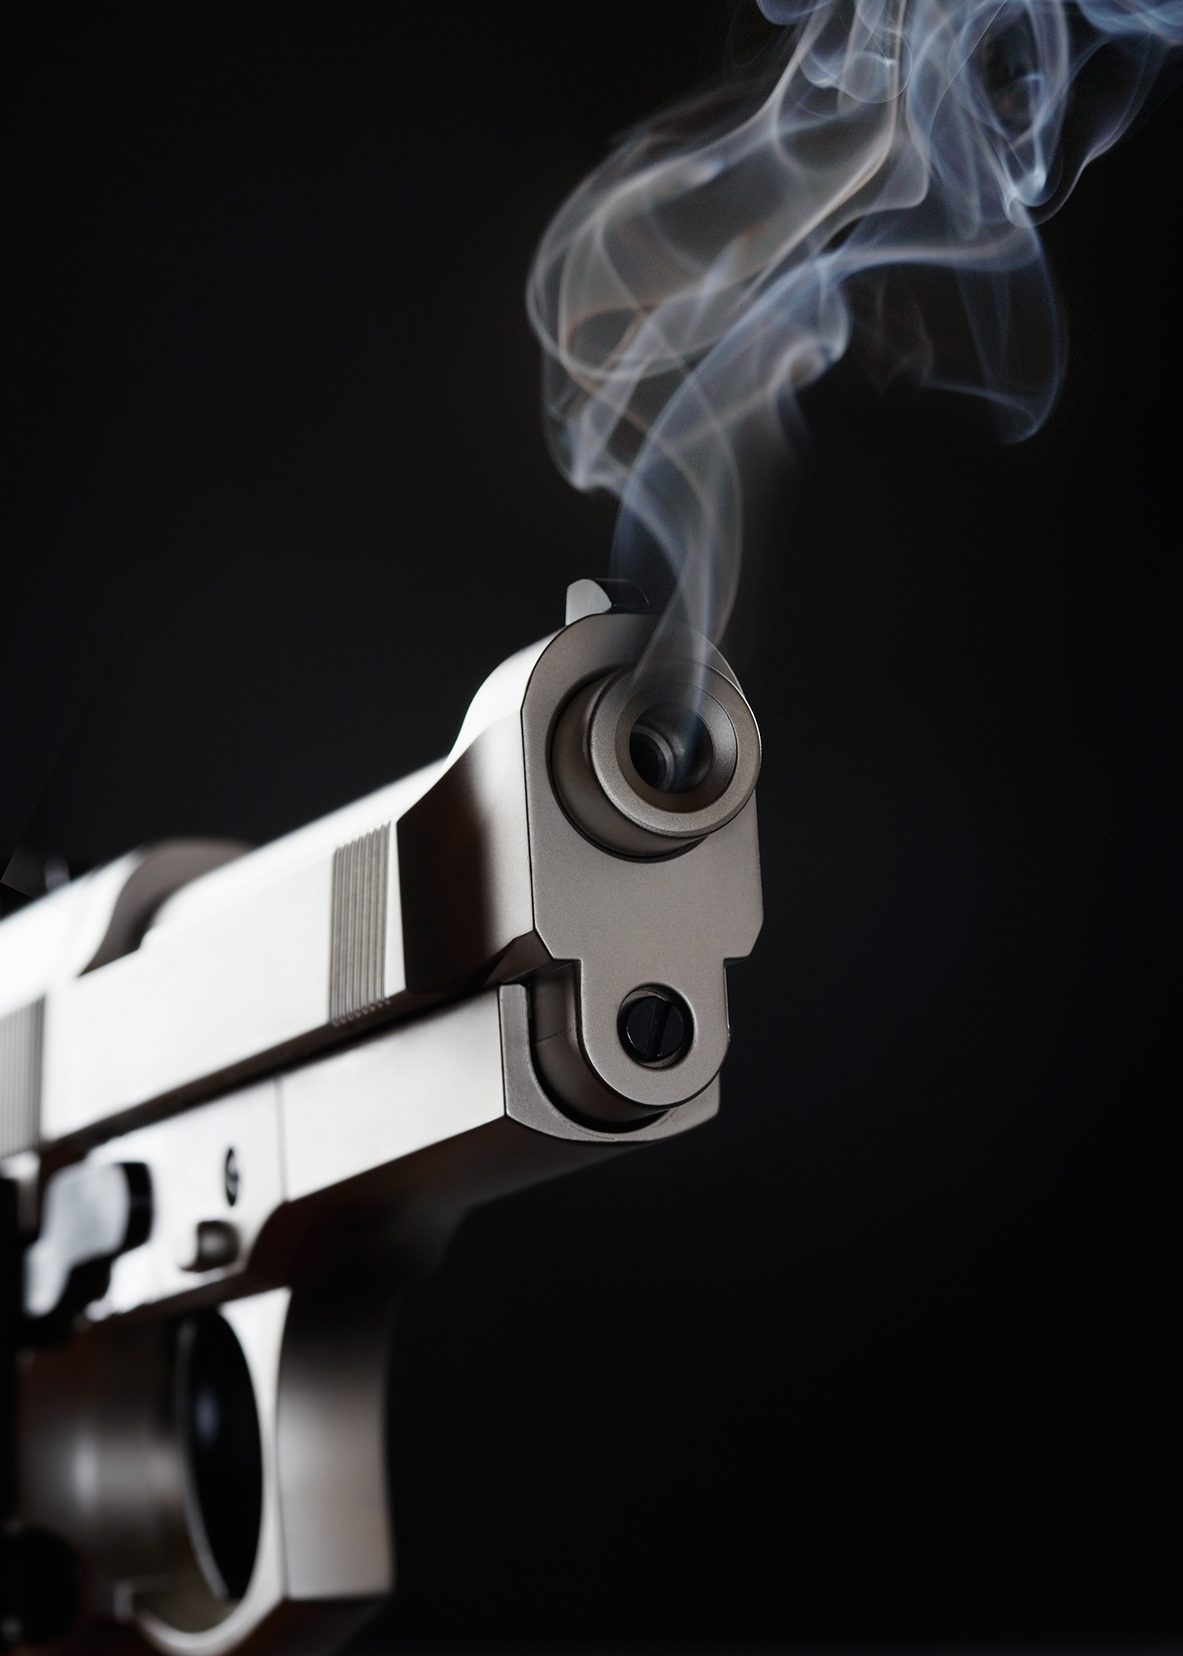 Why Hypothermia Could Be Helpful to Gunshot Victims